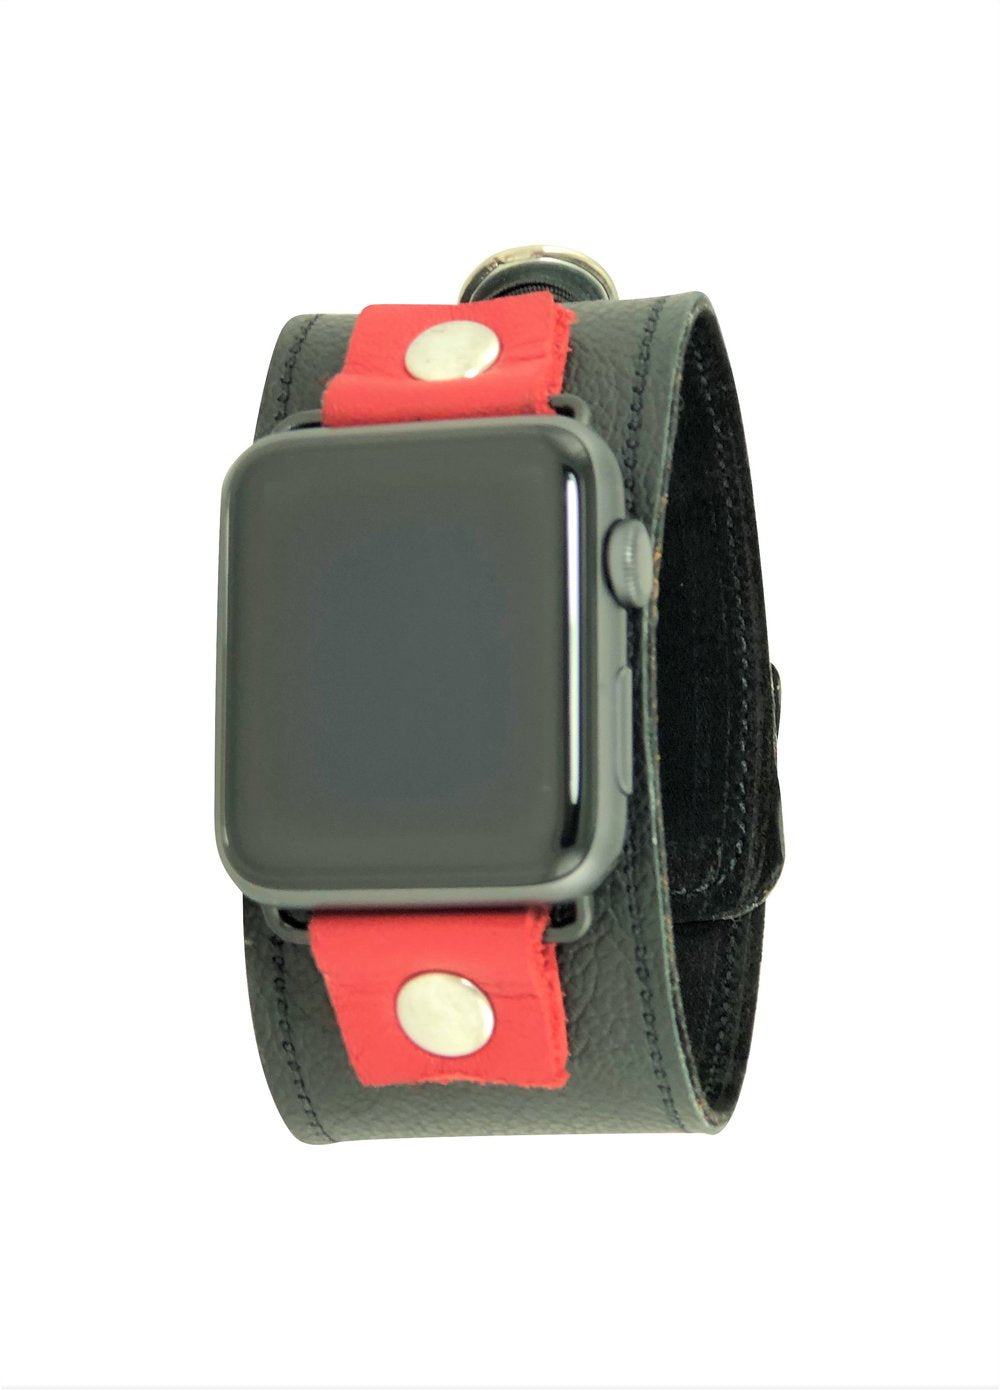 NAN Apple Watch Band - Black & Red